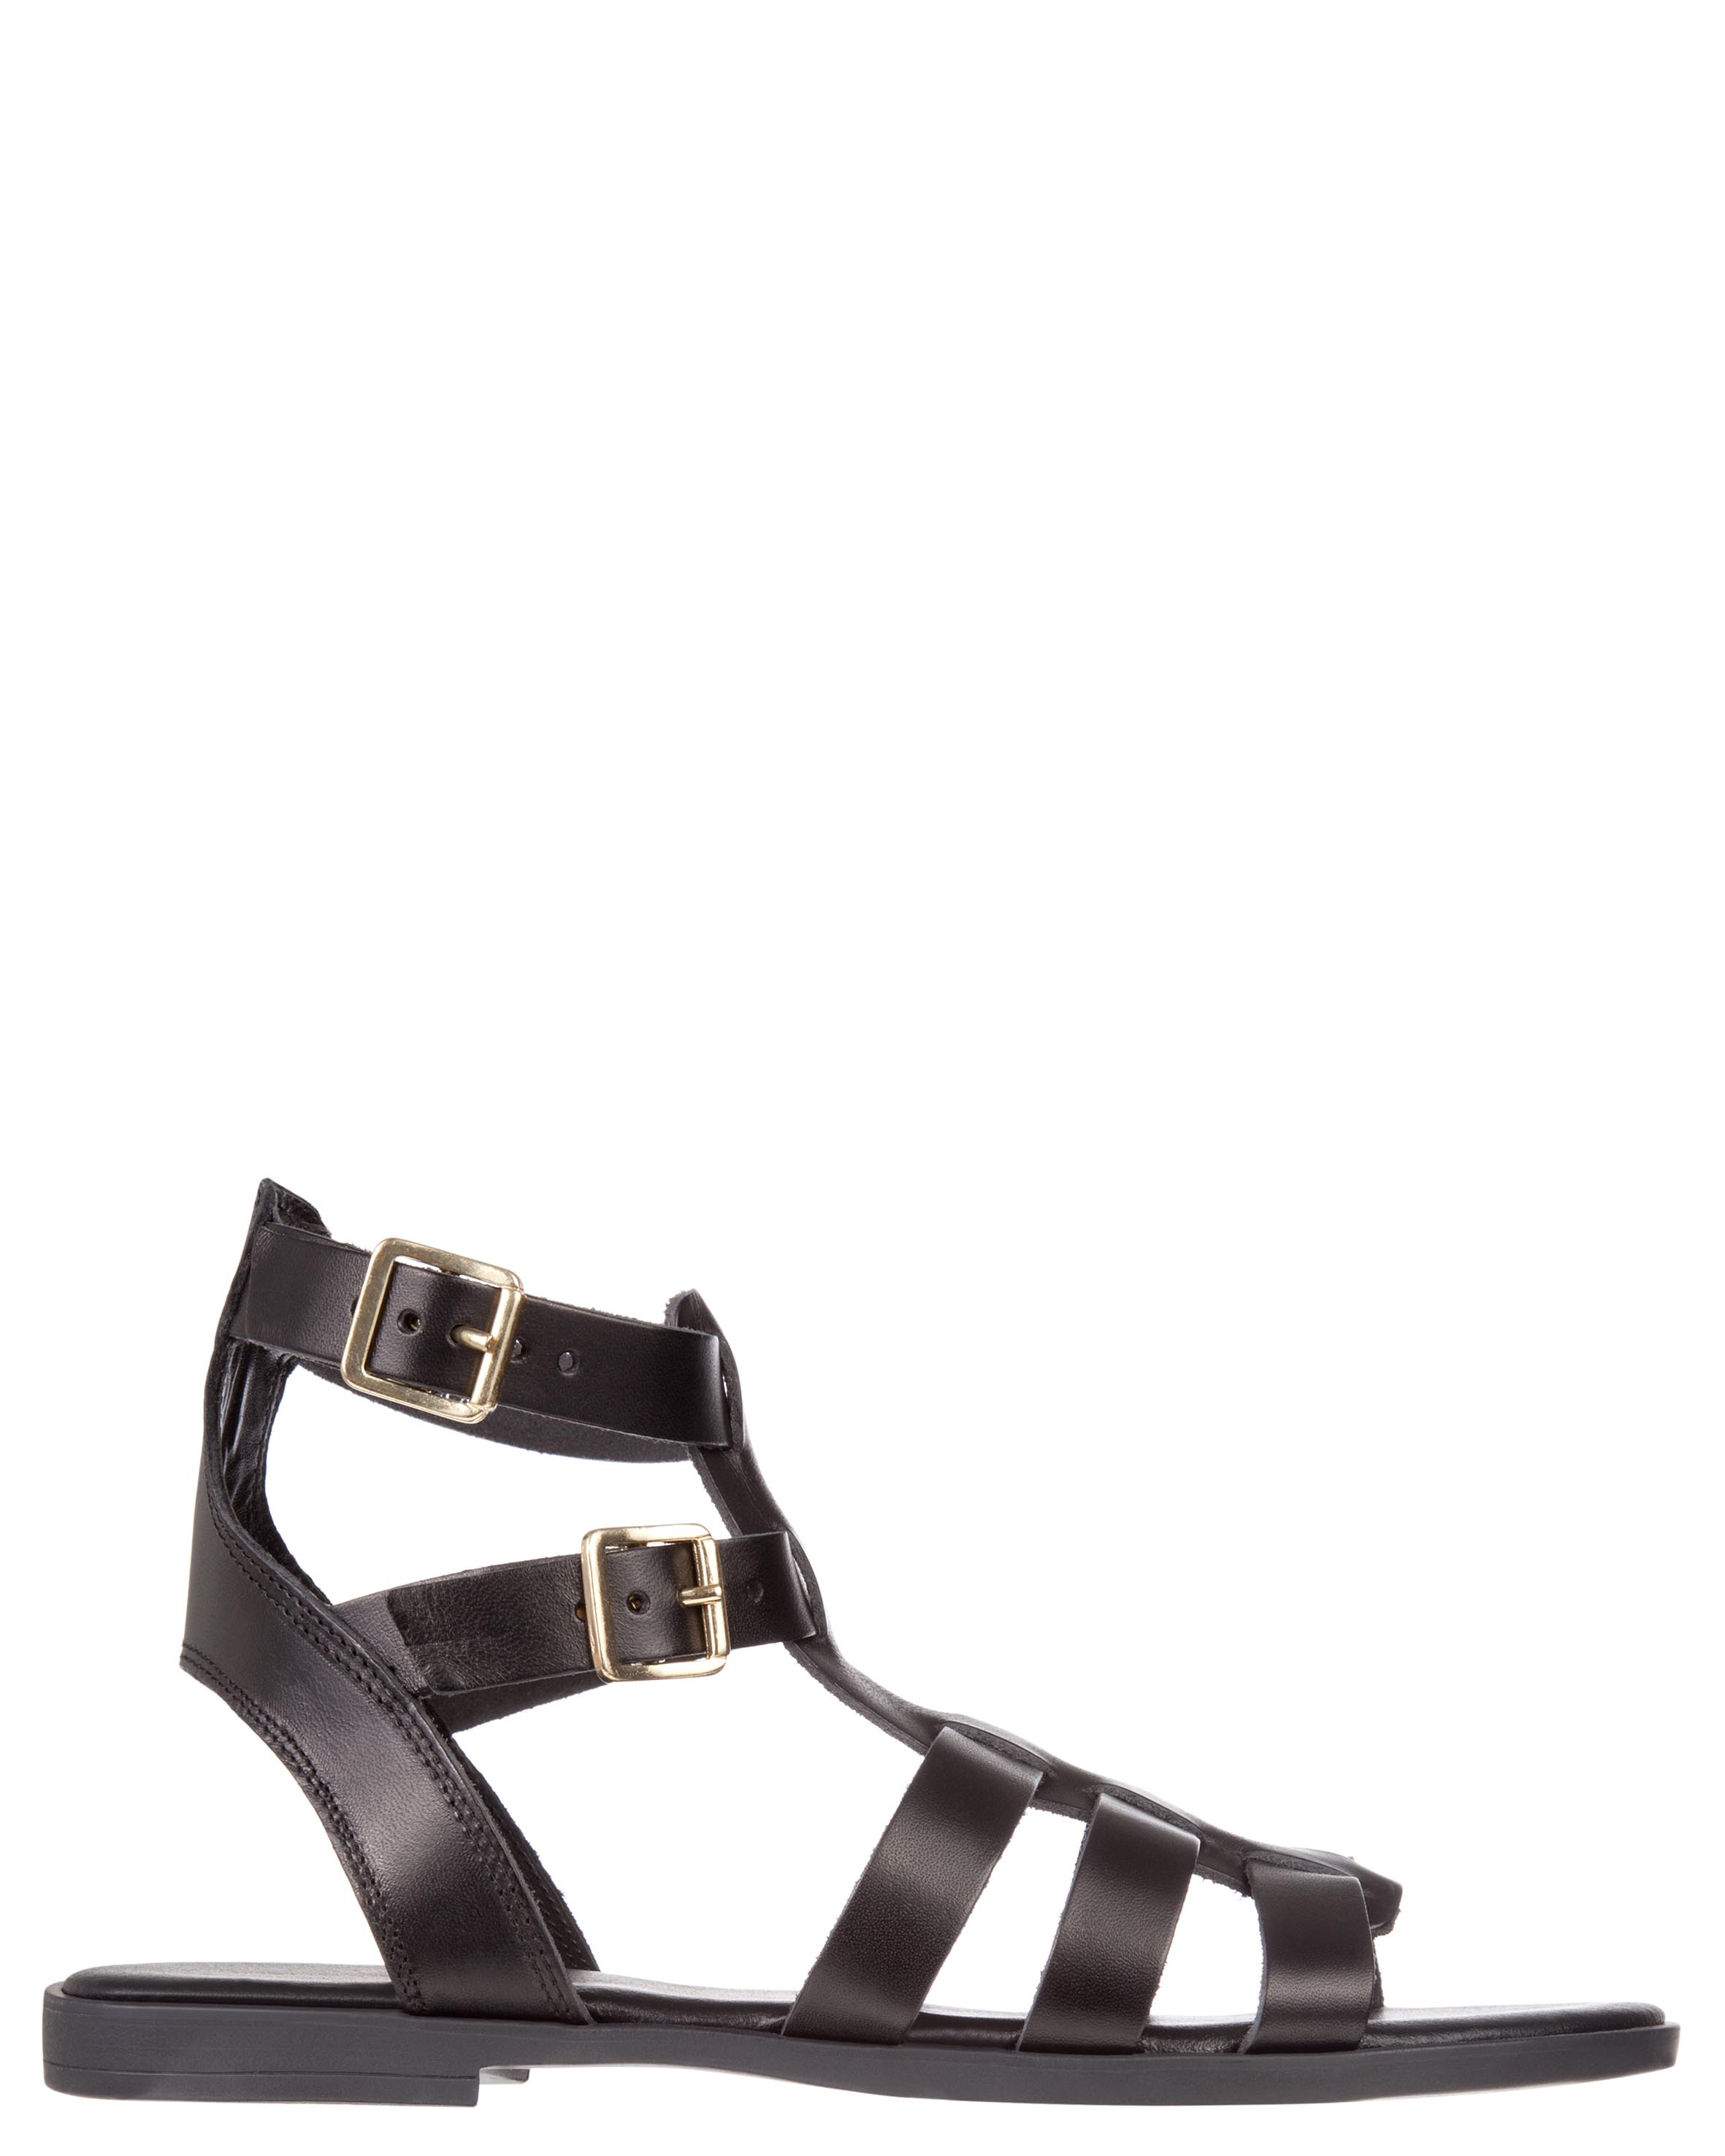 Italian womens shoes online. Shoes